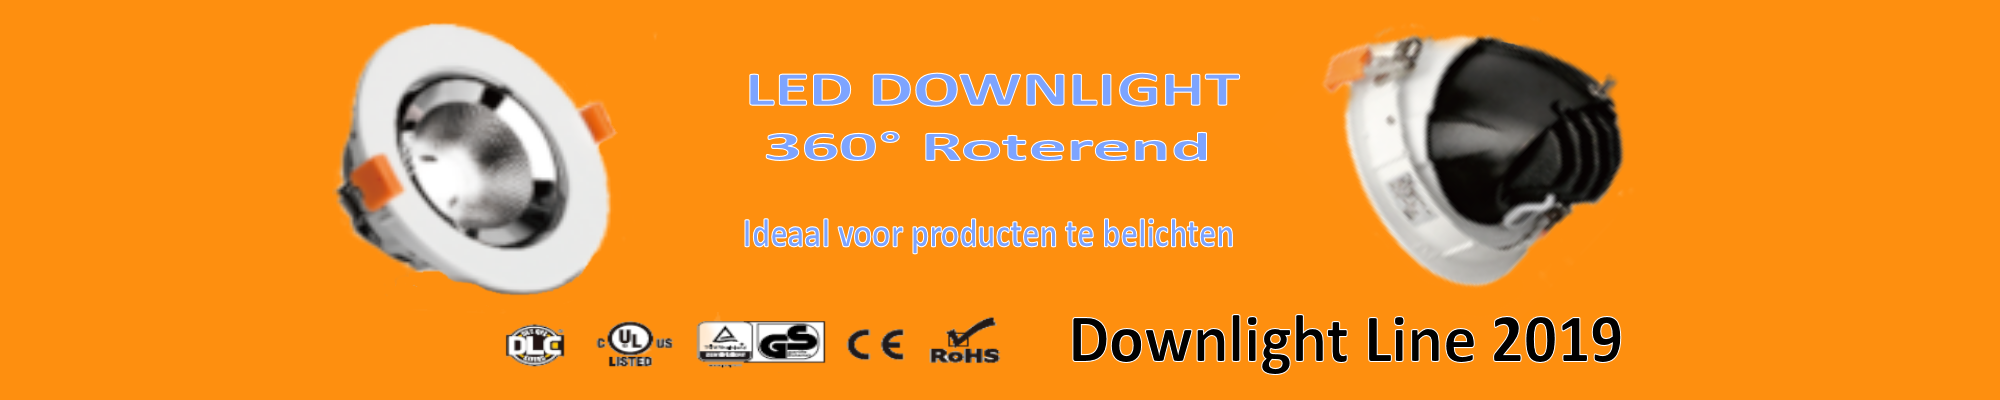 //ledsource.nl/wp-content/uploads/Downlight-2019-6.png